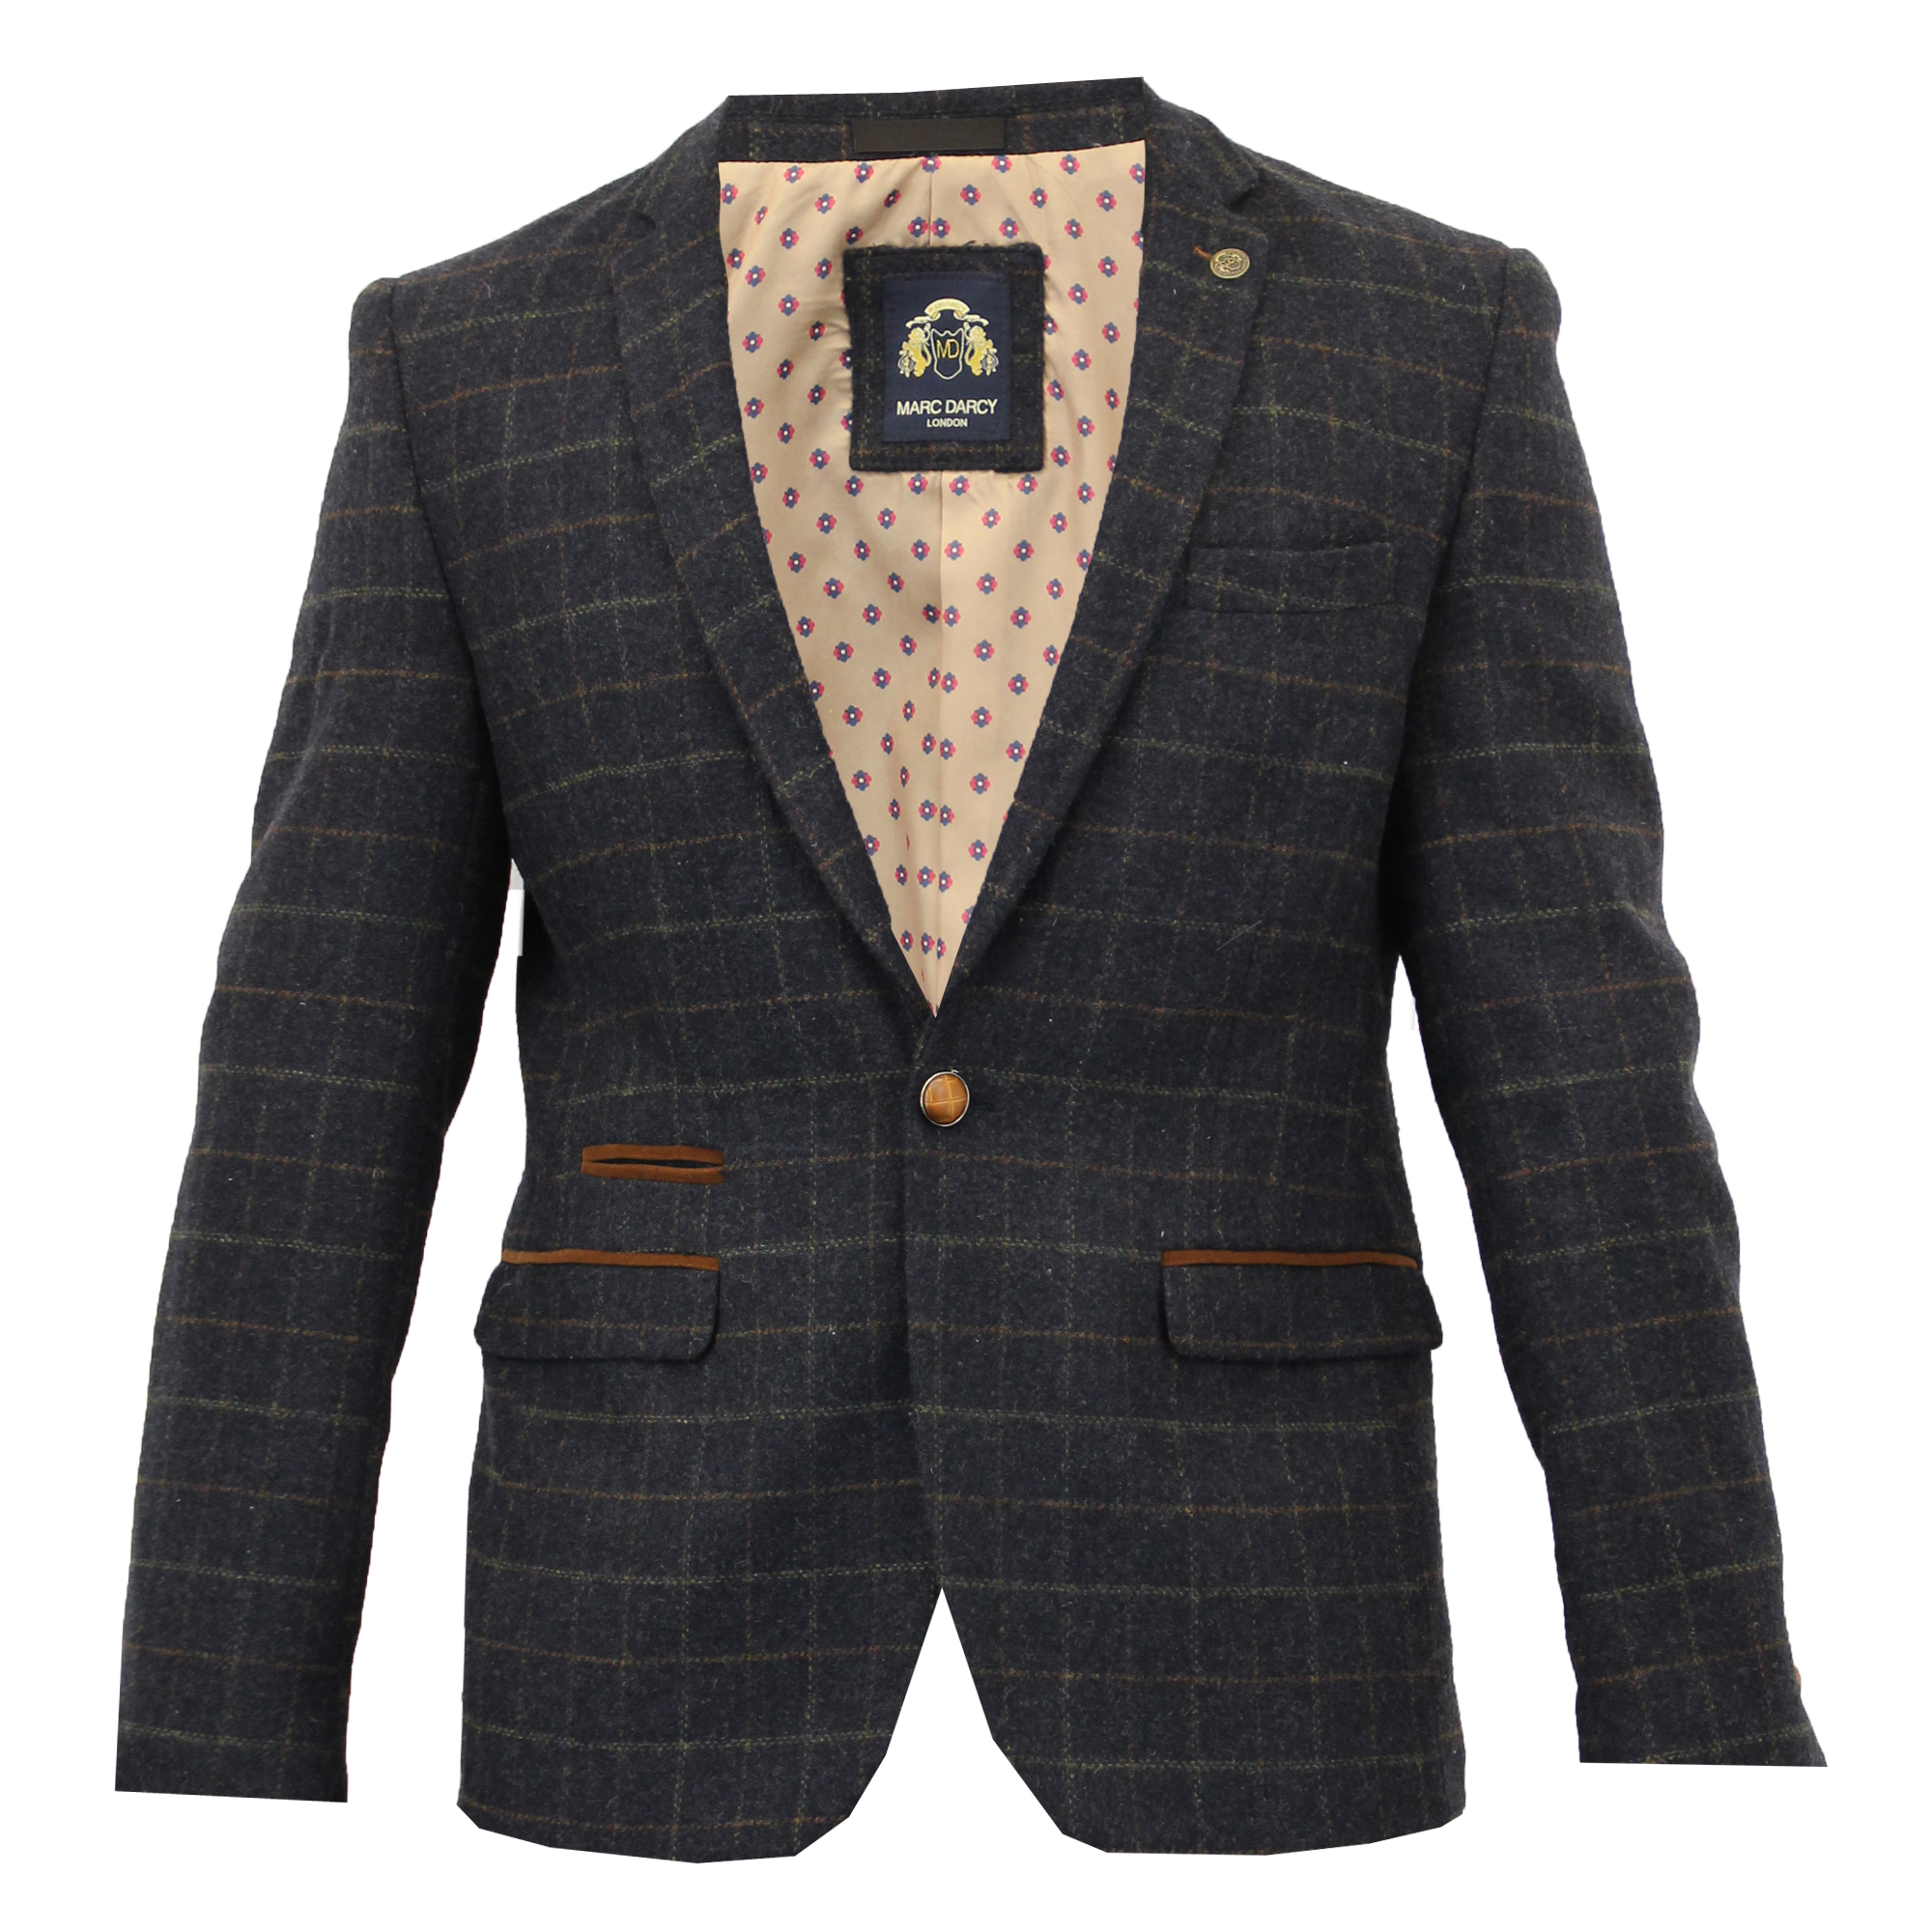 Tweed Coat Designs - Sm Coats